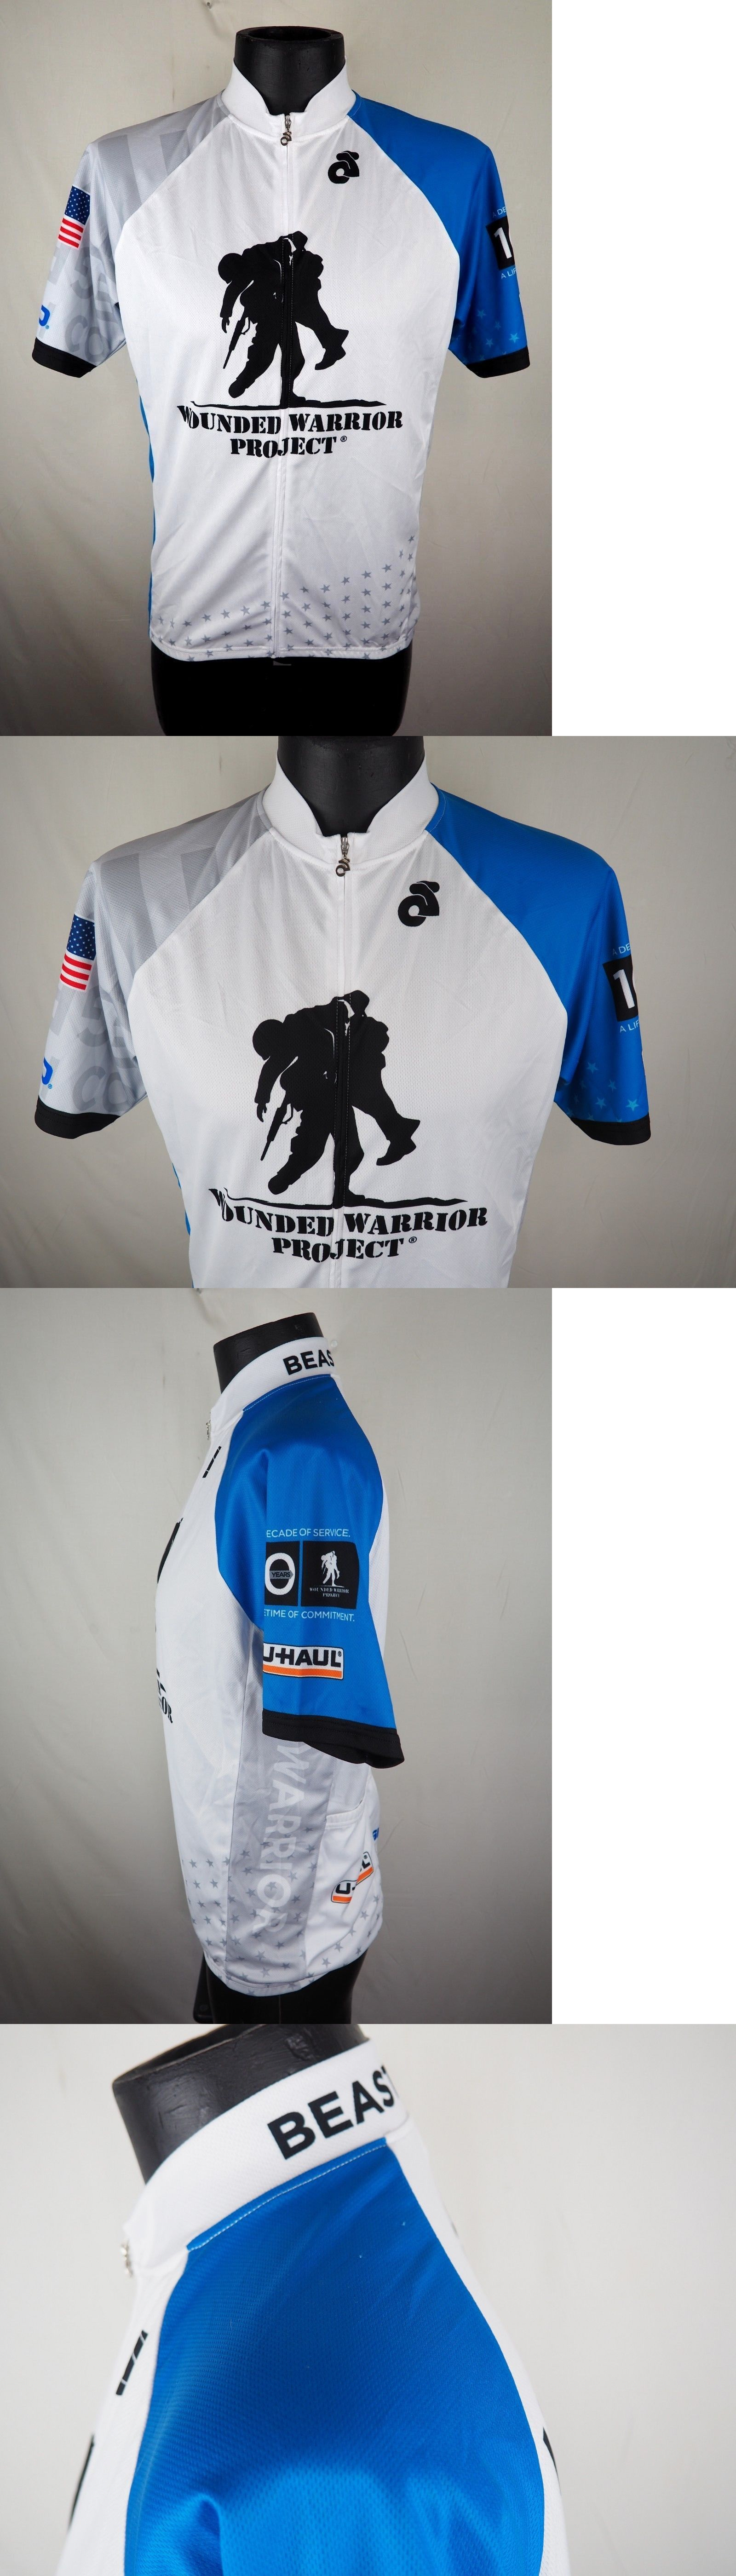 Cycling Clothing 158990  Nwt Men S Champ Sys Wounded Warrior Project Geico  Trek Cycling Jersey Xl Soldier -  BUY IT NOW ONLY   27.99 on eBay! 0beb7d01c